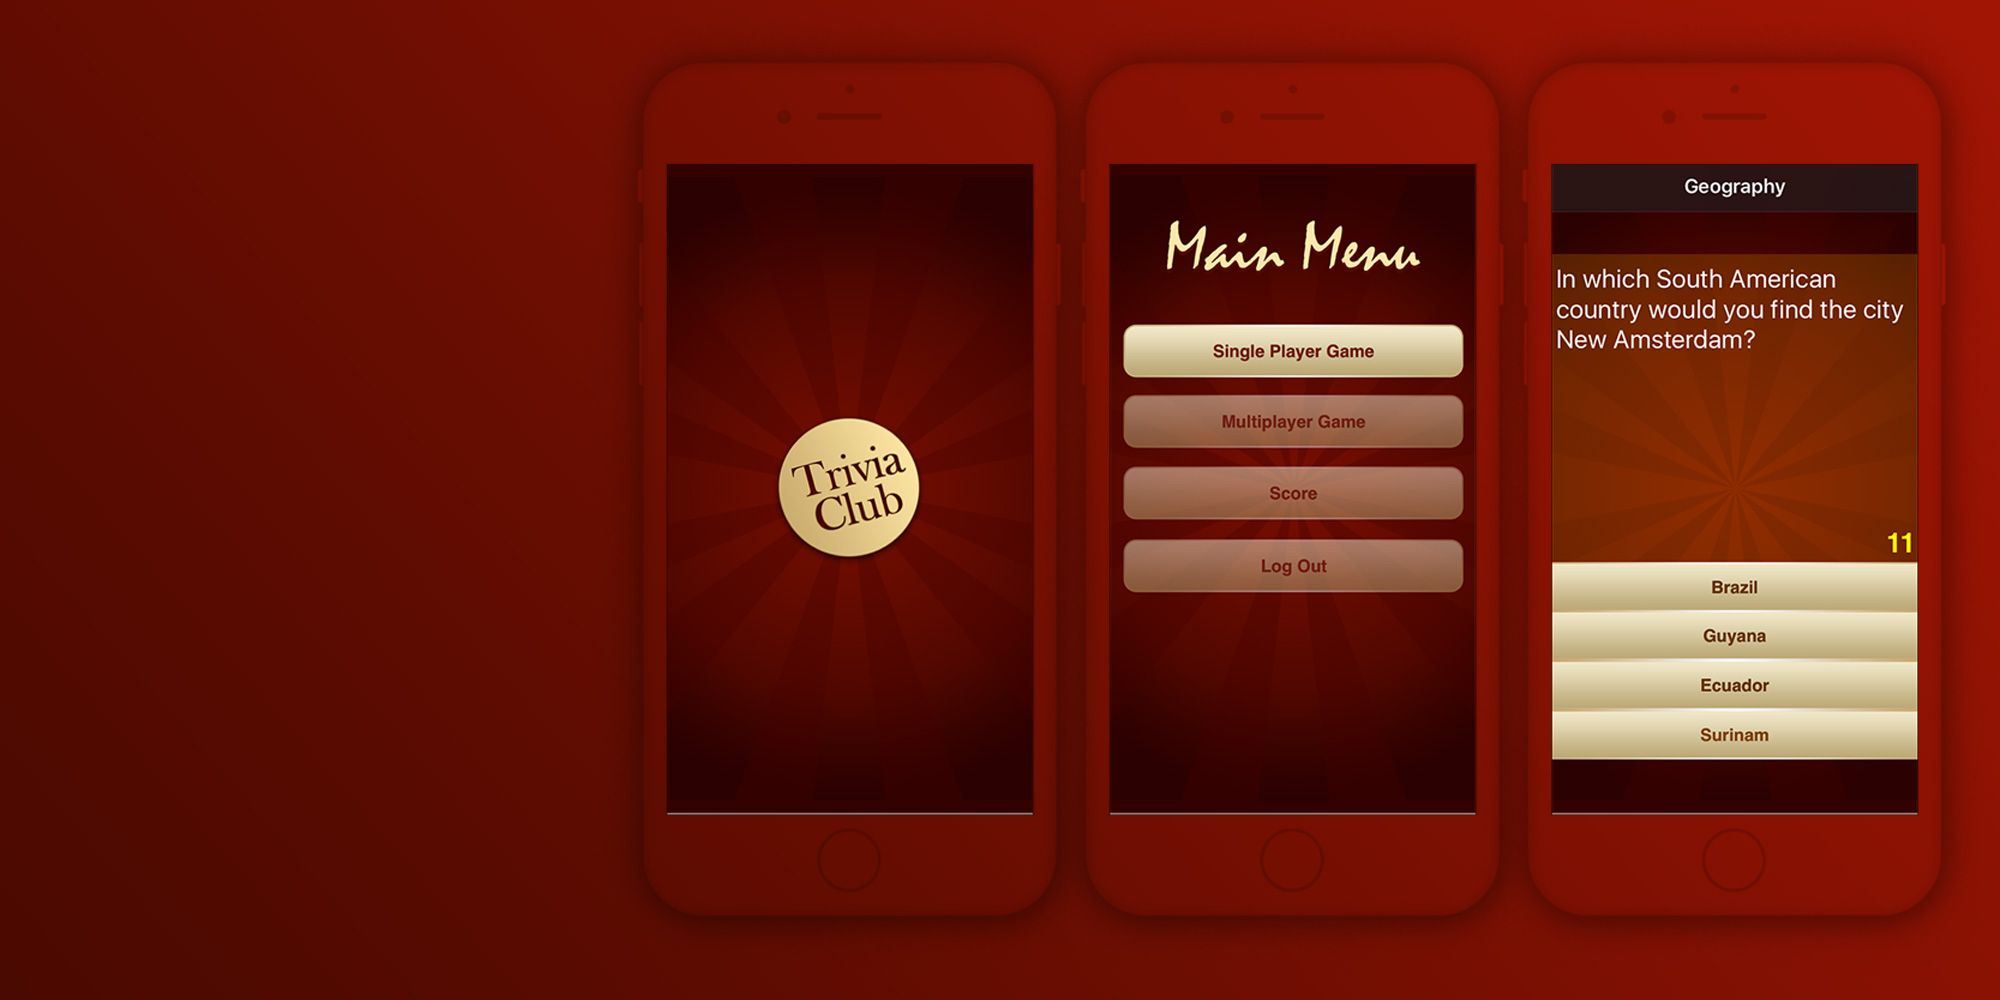 WinPhone, Android and iOS application Trivia Club